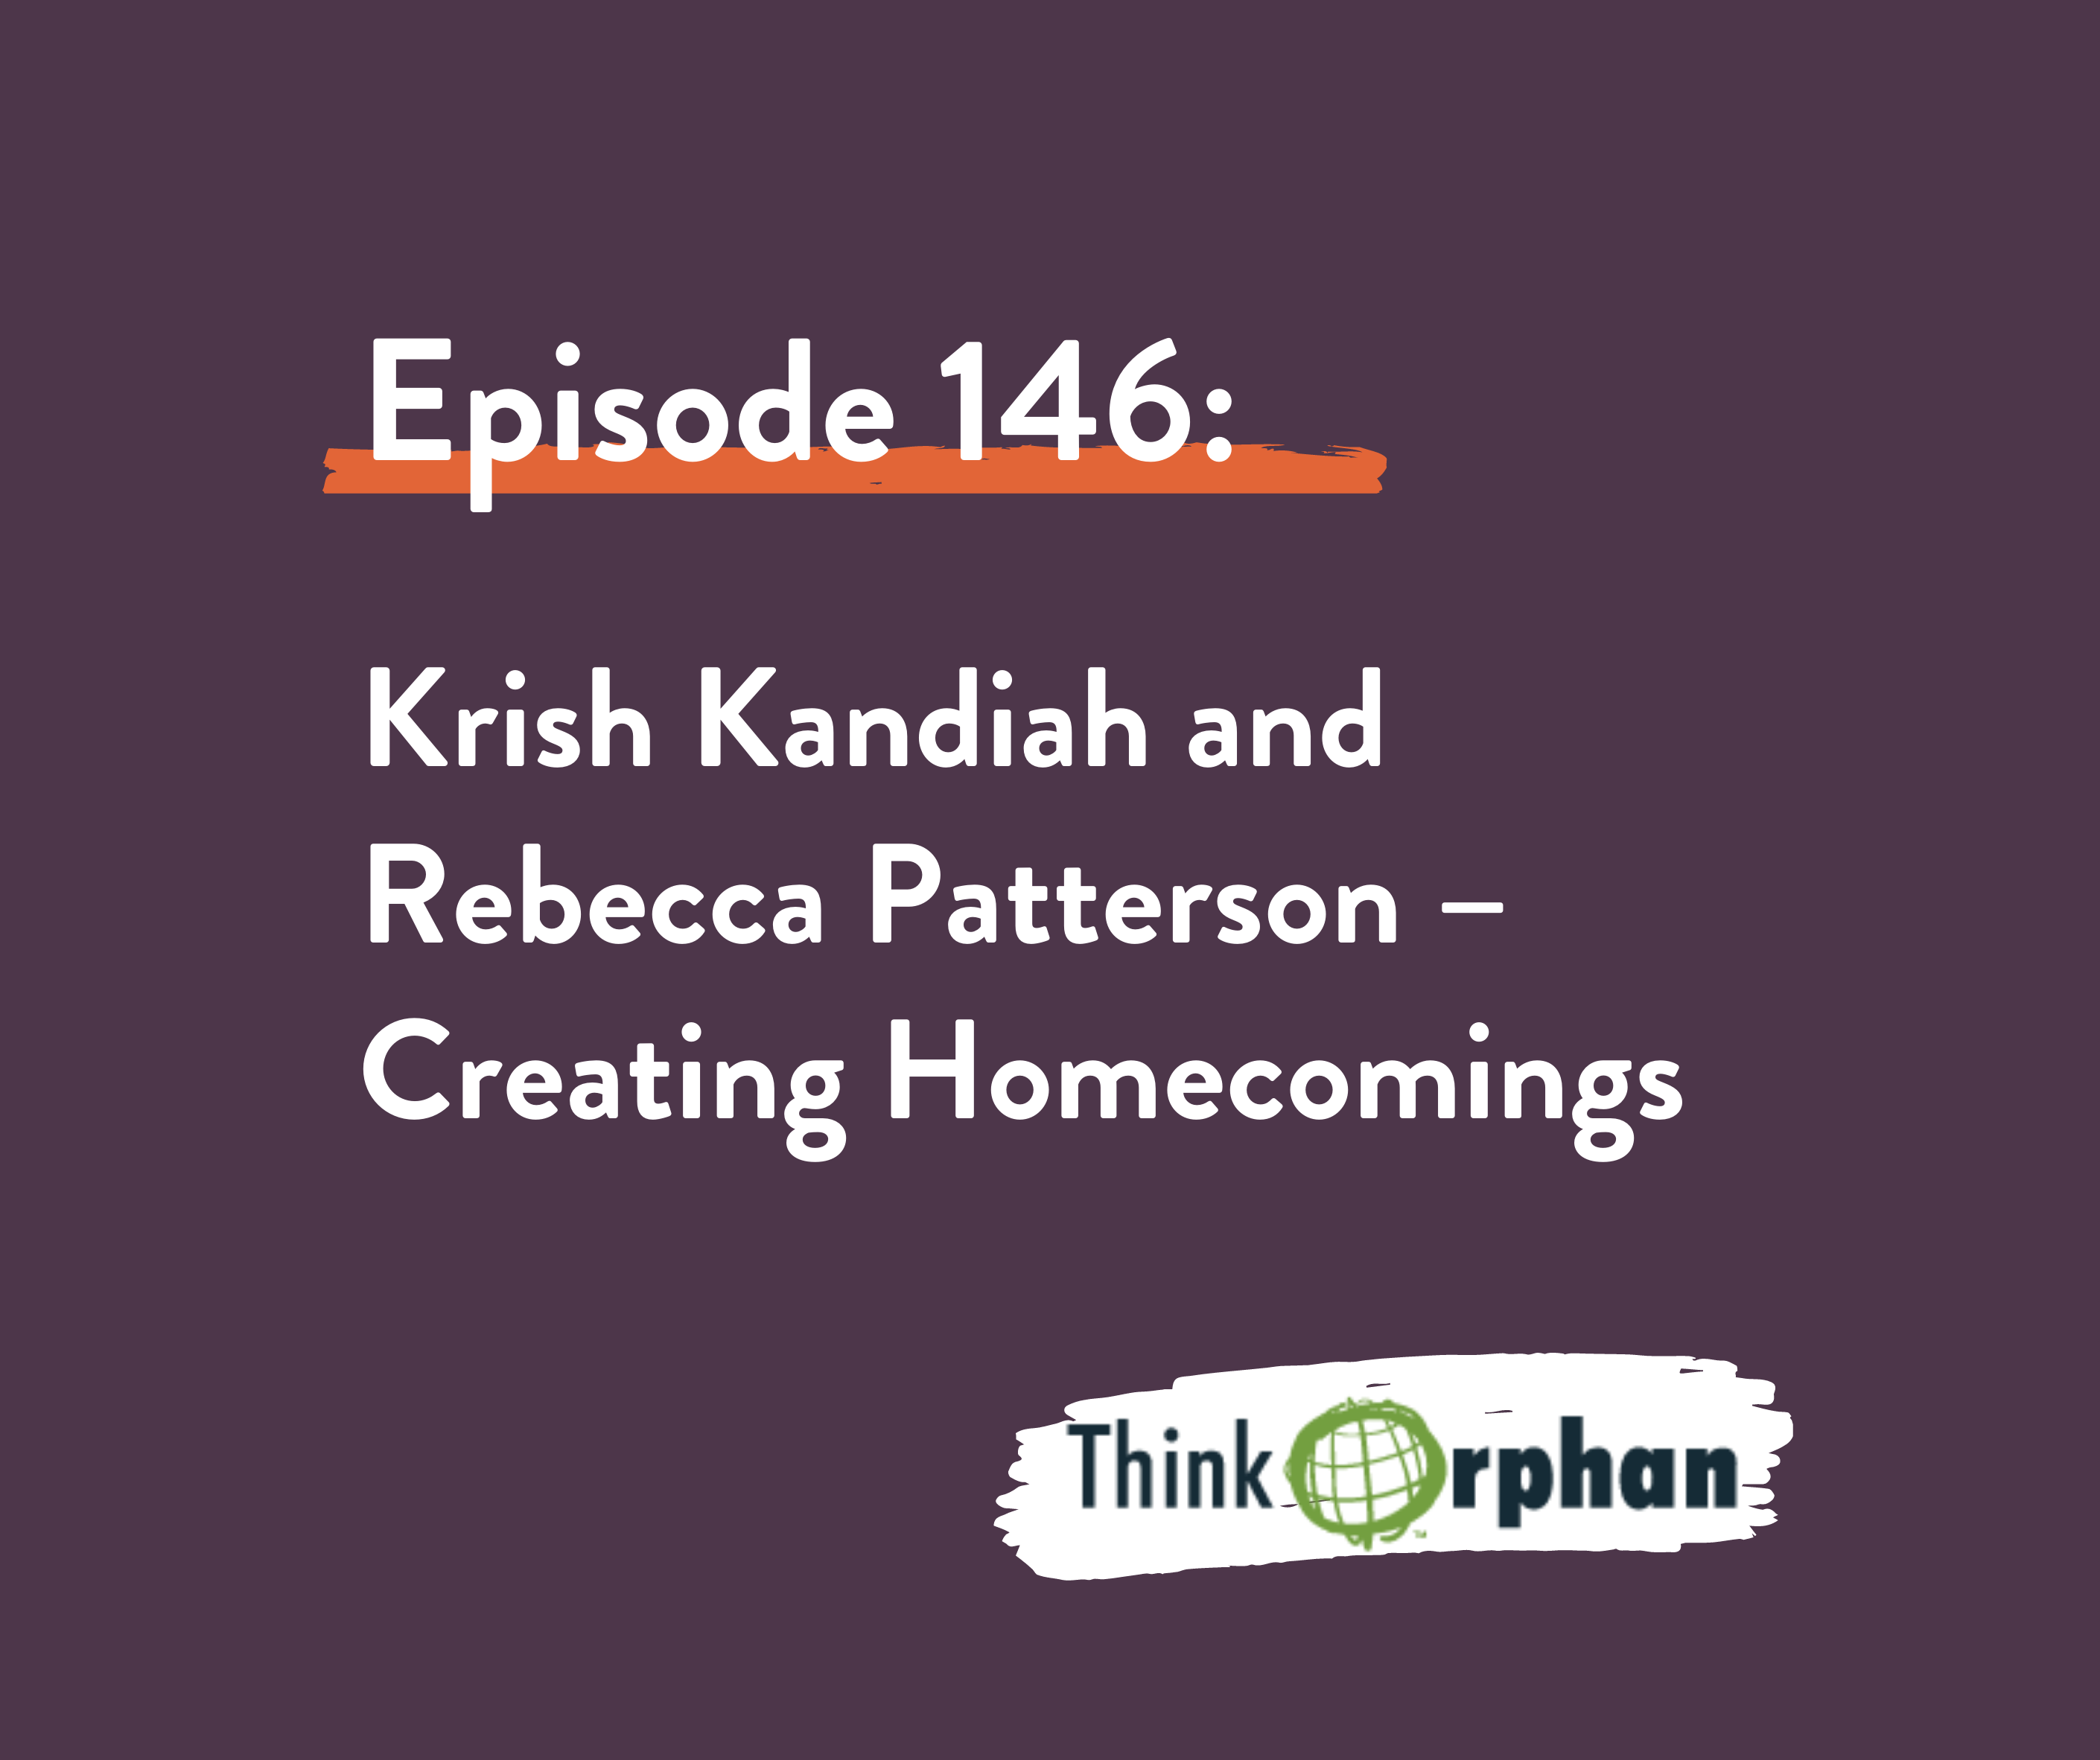 Think Orphan Podcast Interview: Creating Homecomings